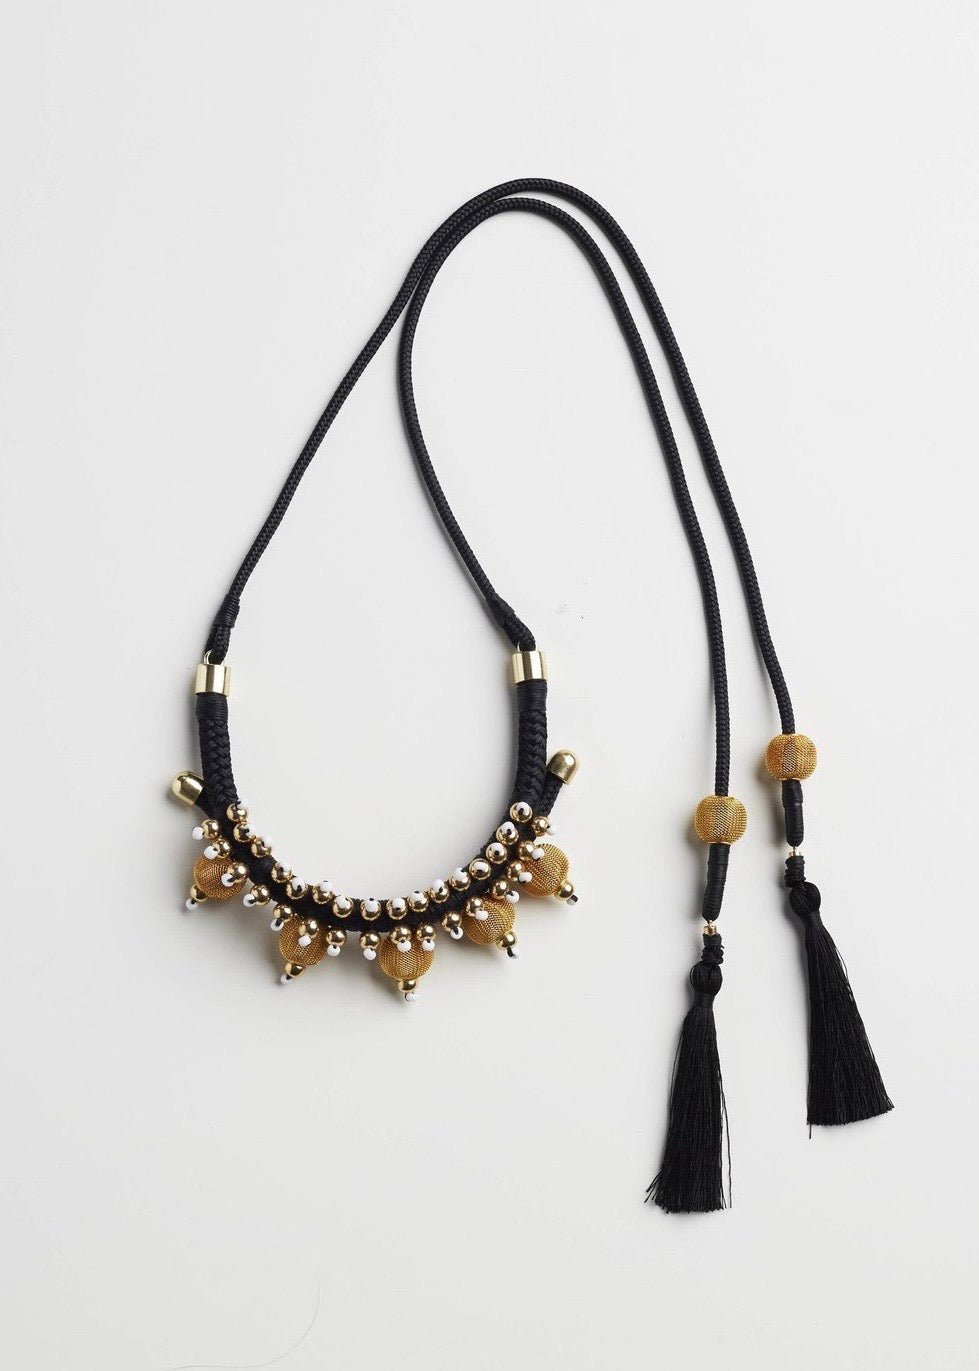 Pichulik black and gold rope necklace with gold beads